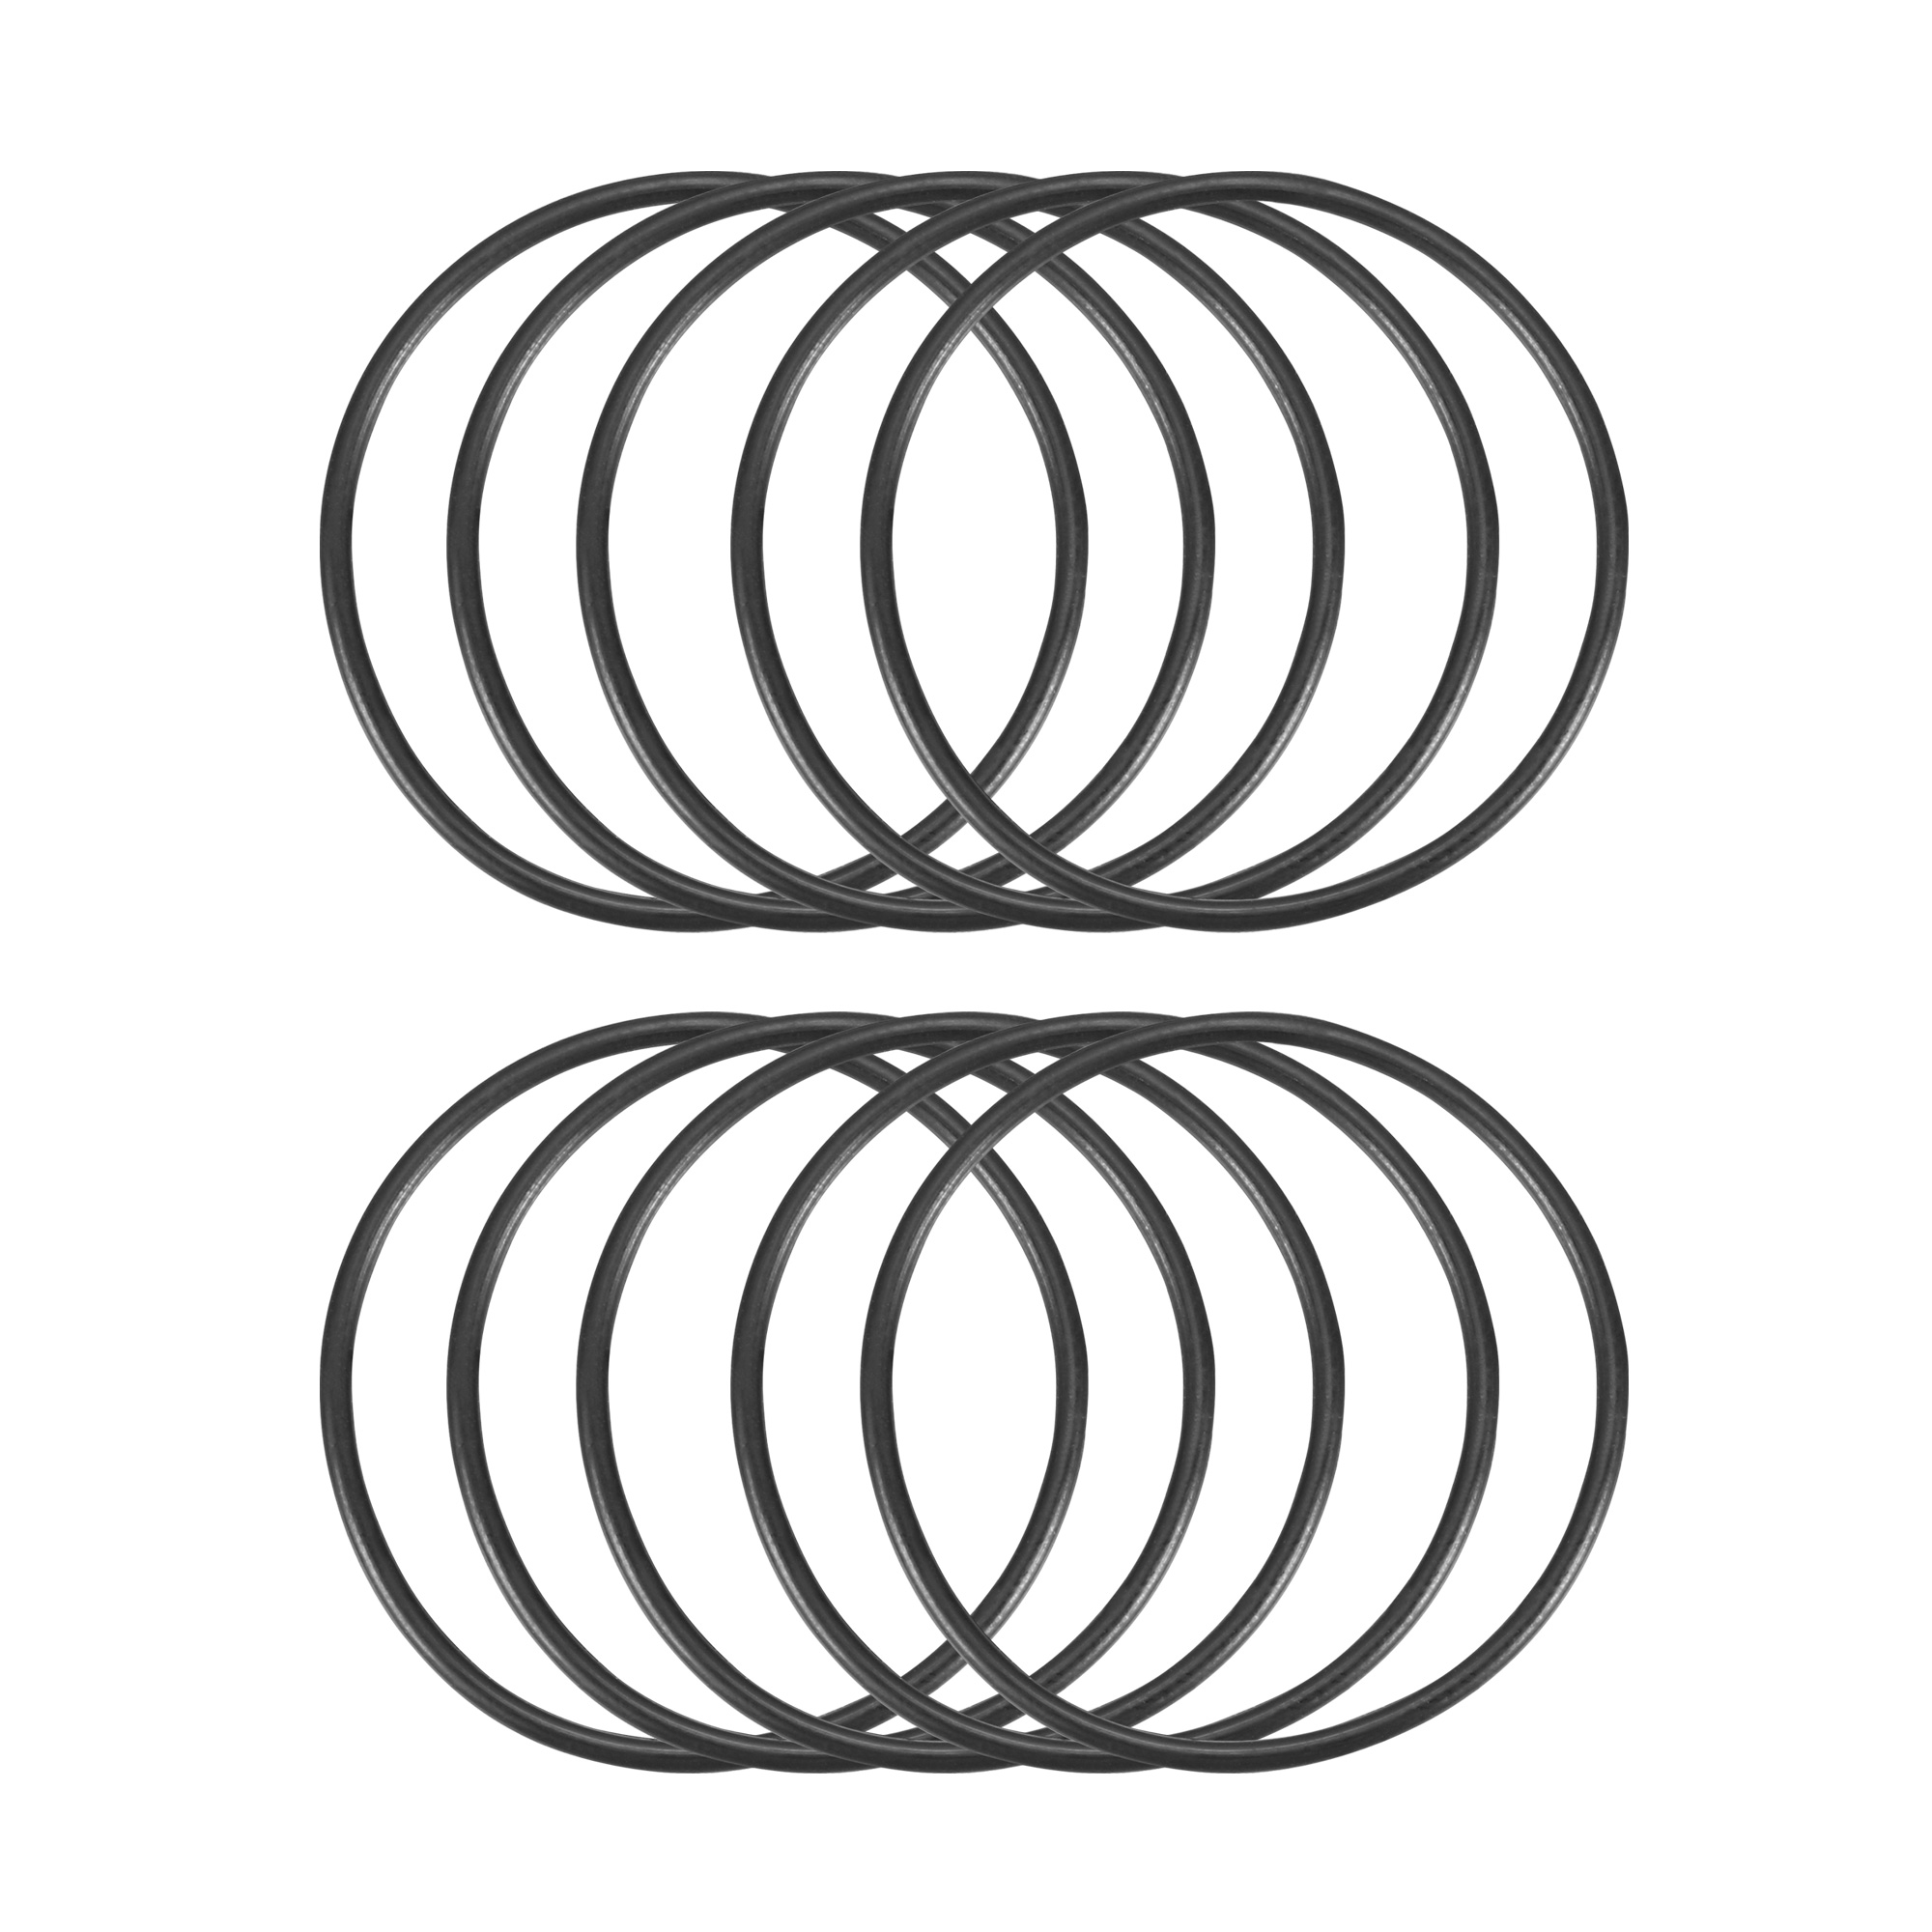 10 Pieces 32mm x 35mm x 1.5mm Black Rubber Seal O Rings Gaskets